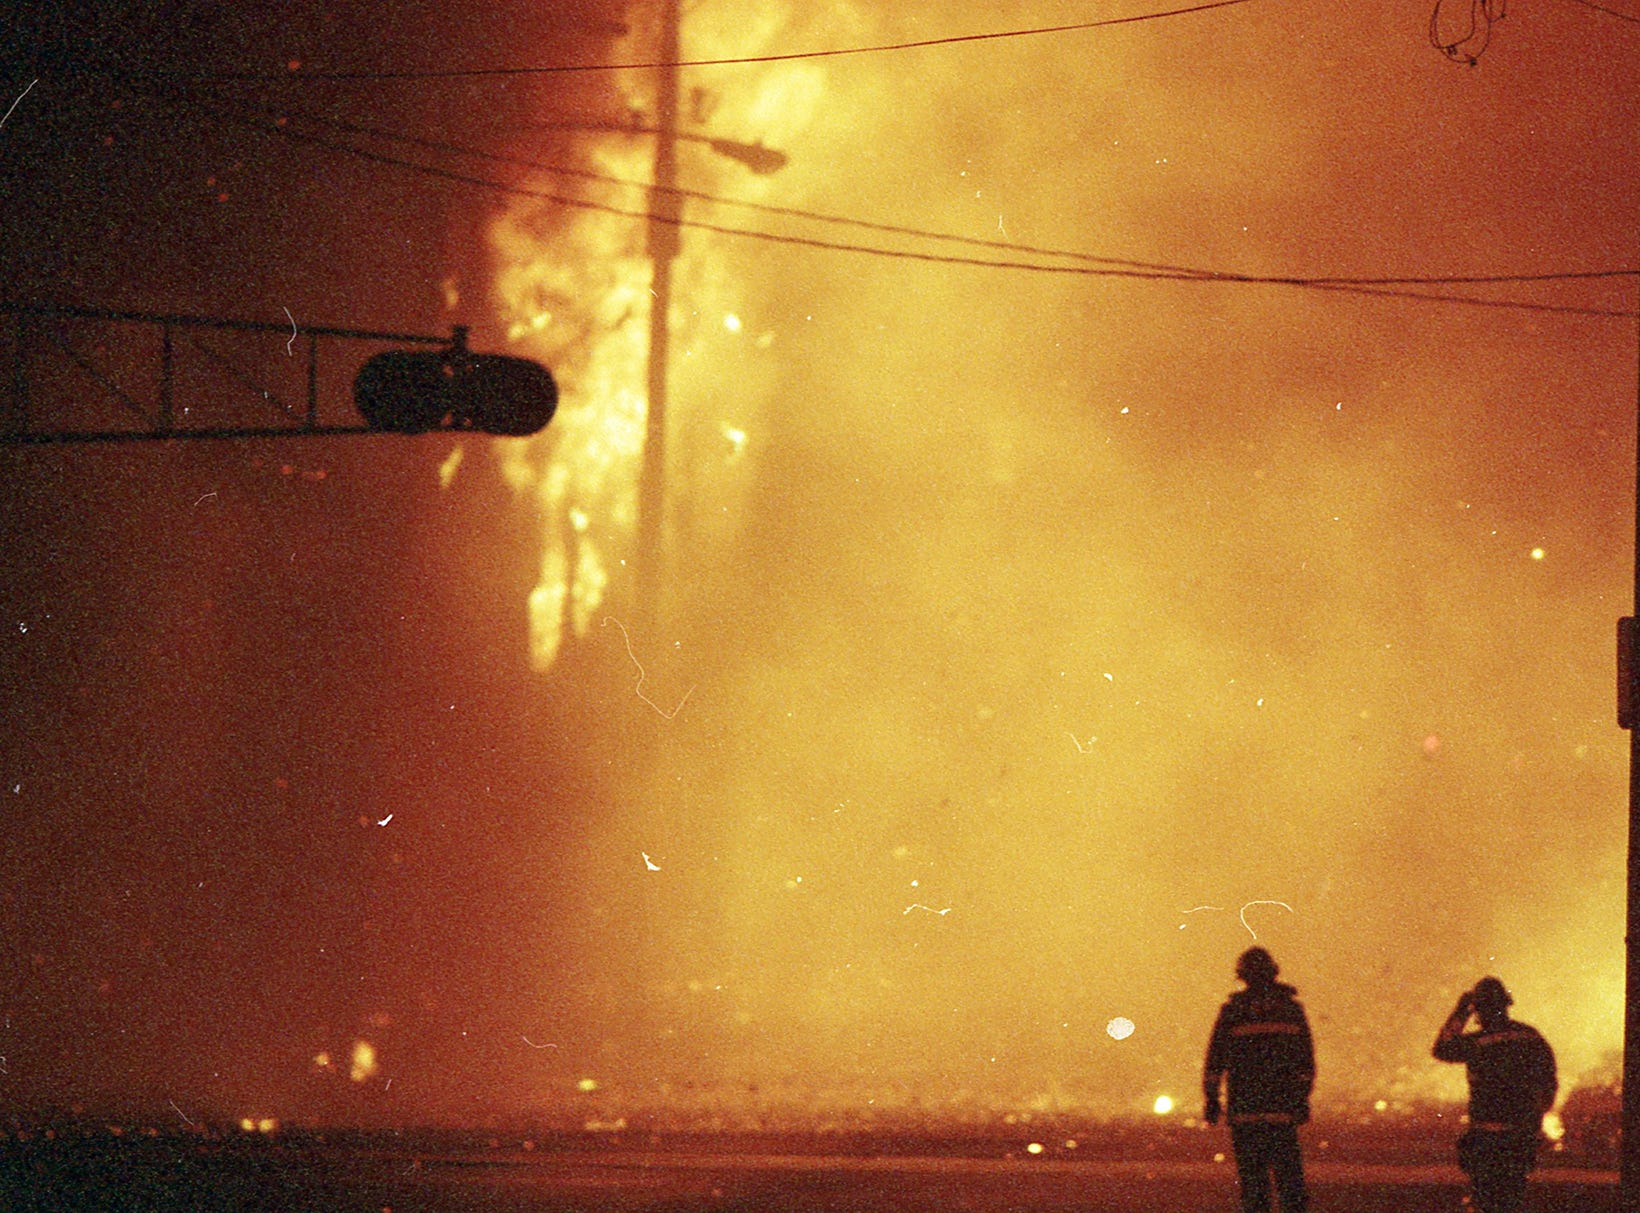 Firefighters are dwarfed by the raging fire. A fire began at the former Thonet Furniture plant at 491 East Princess Street on December 11, 1993. Eventually, the four alarm fire spread through the complex of buildings and several other properties.